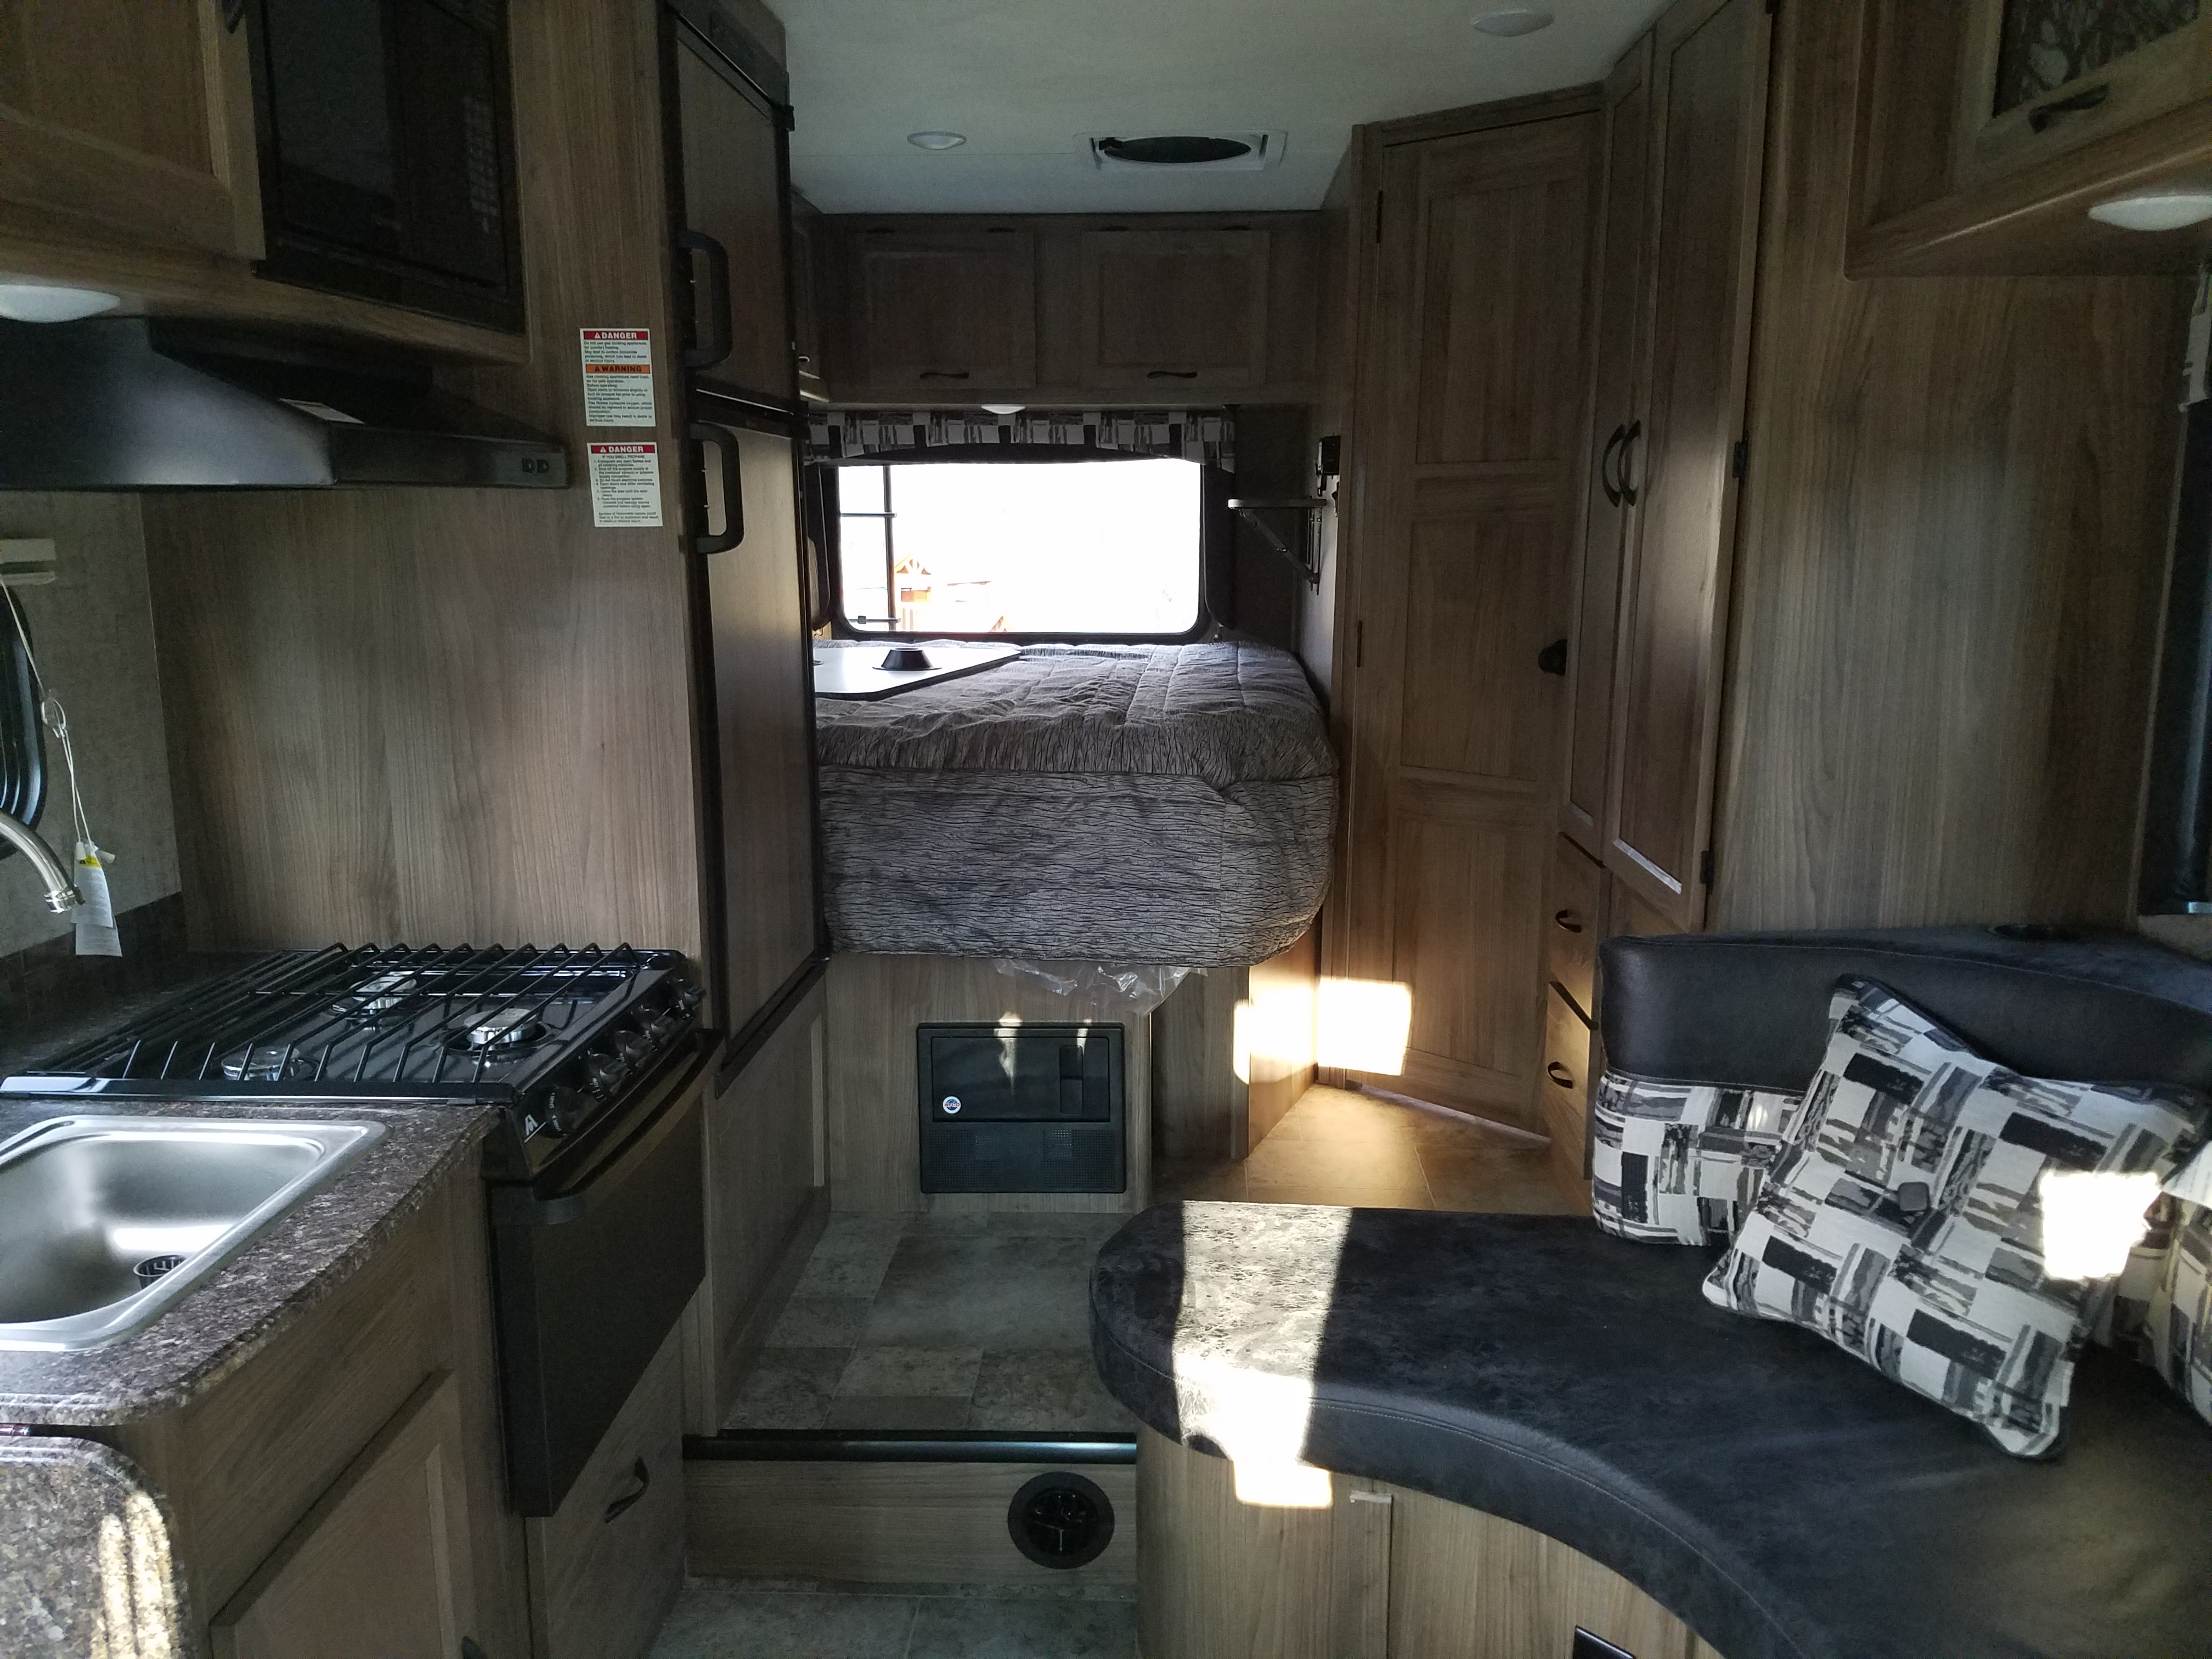 Top 25 Anderson County Sc Rv Rentals And Motorhome Outdoorsy 2003 Jayco Fifth Wheel Wiring Diagram